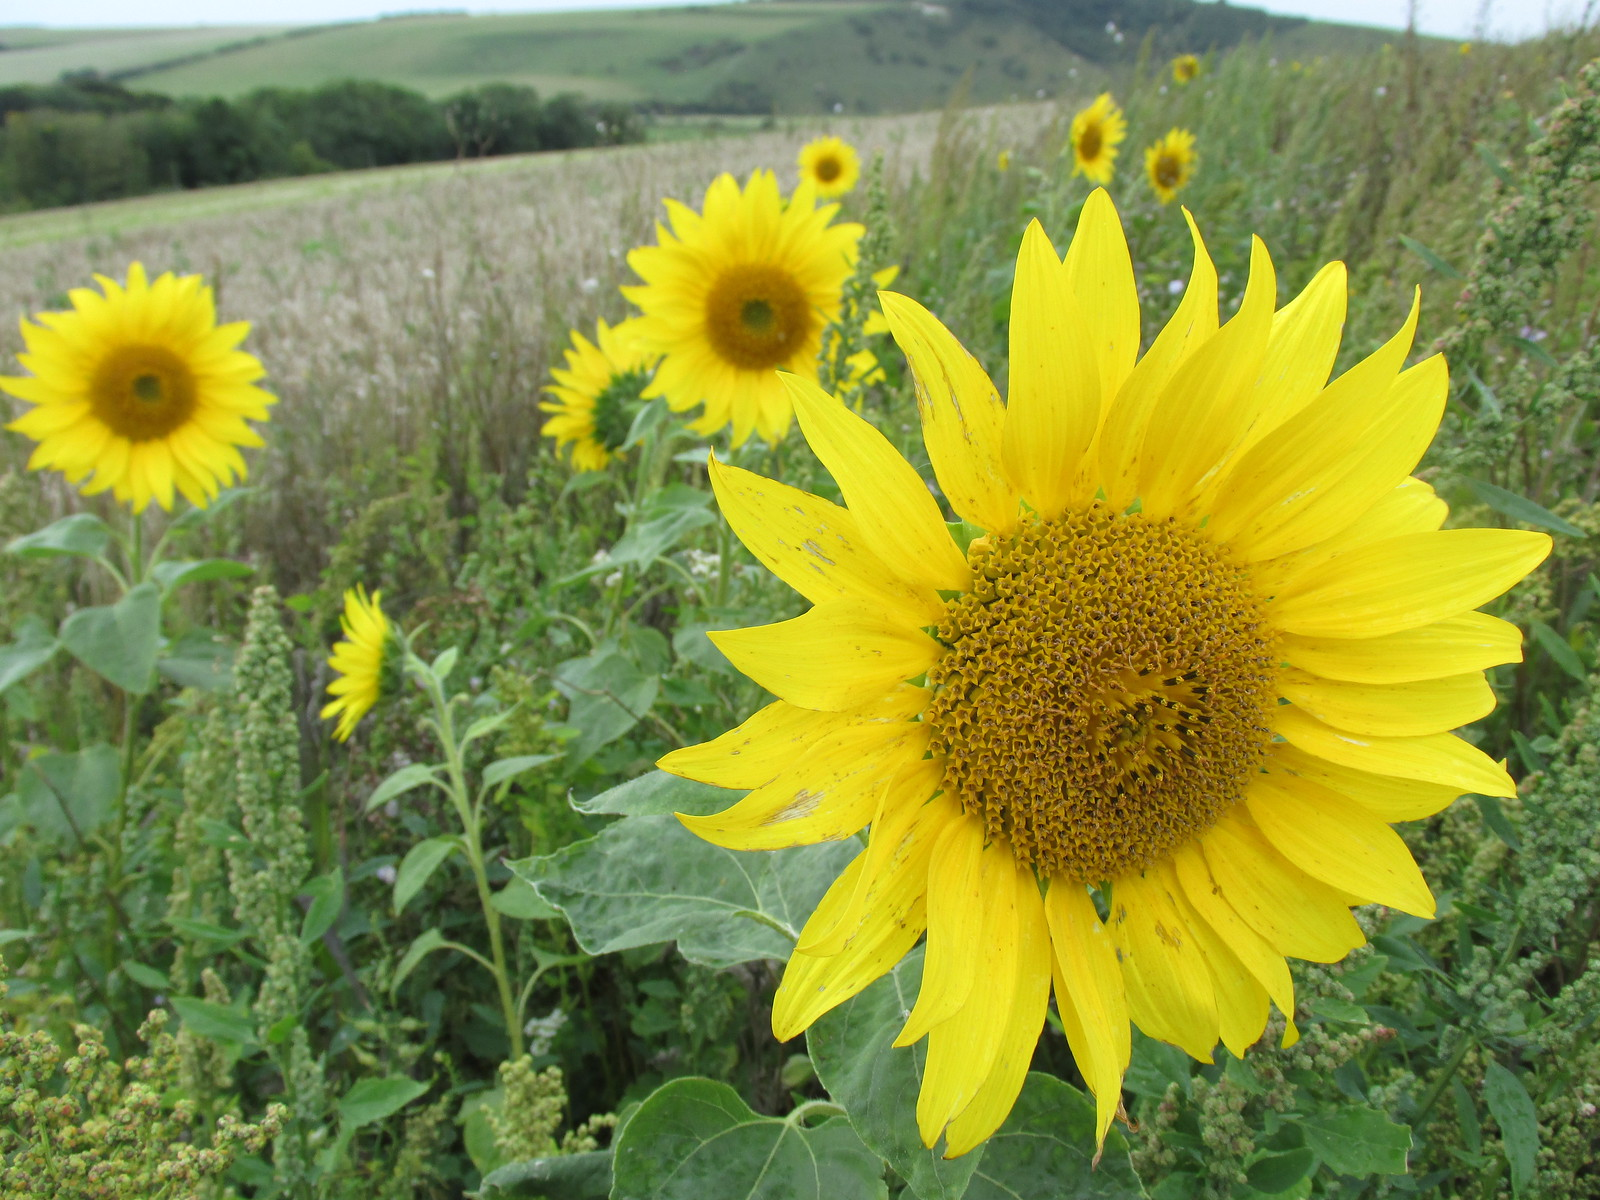 August 29, 2015: Lewes to Seaford South Downs sunflowers